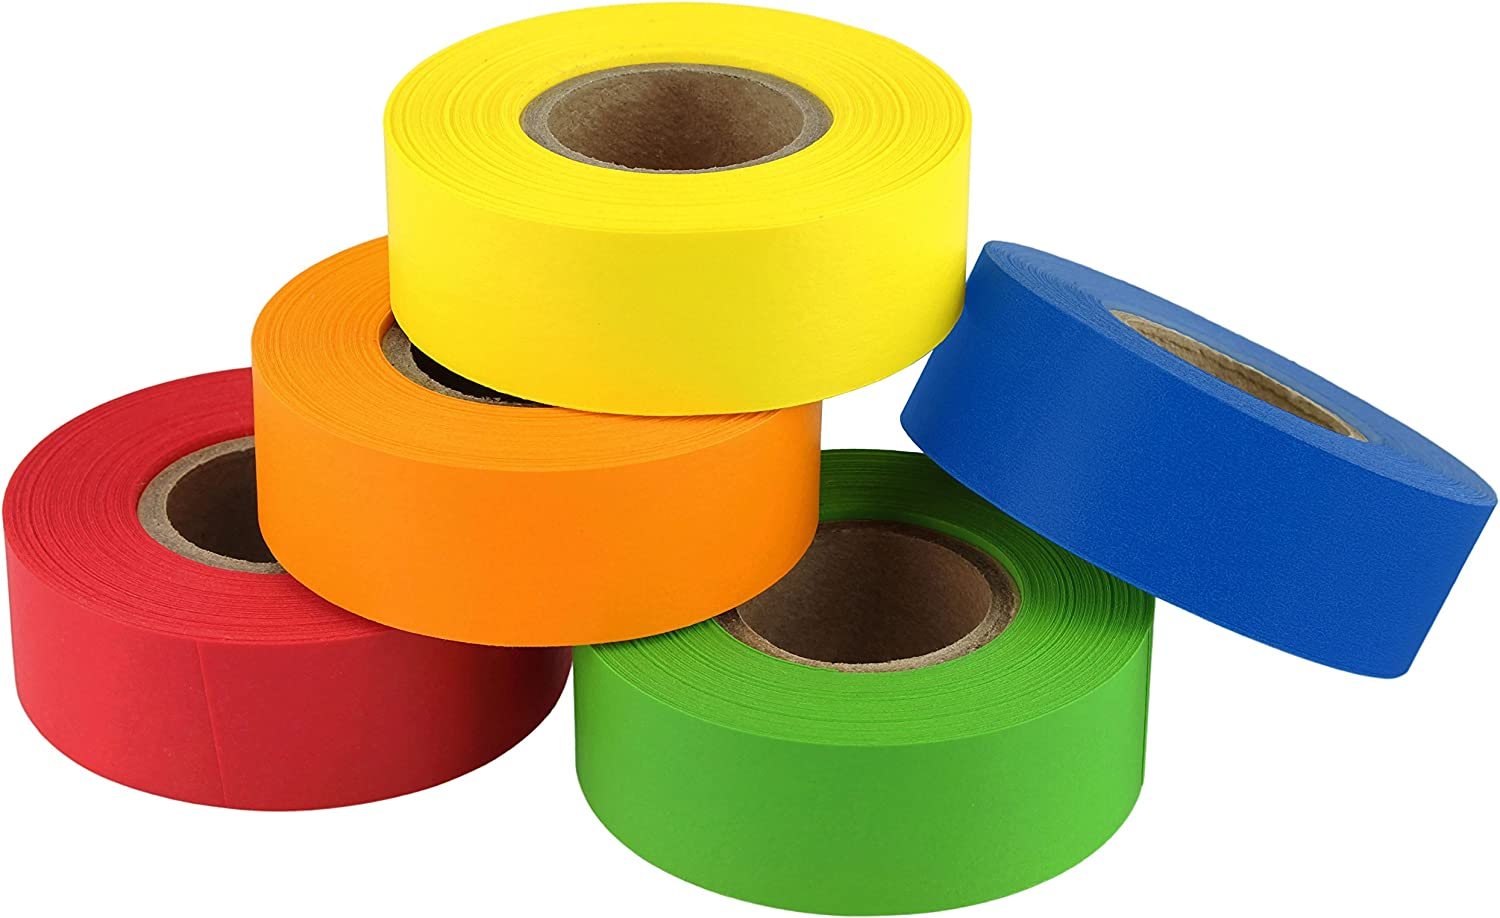 ChromaLabel Color-Code Labeling Tape Variety Pack, 5 Assorted Colors, 500 inch Rolls, 3/4 inch: Industrial & Scientific